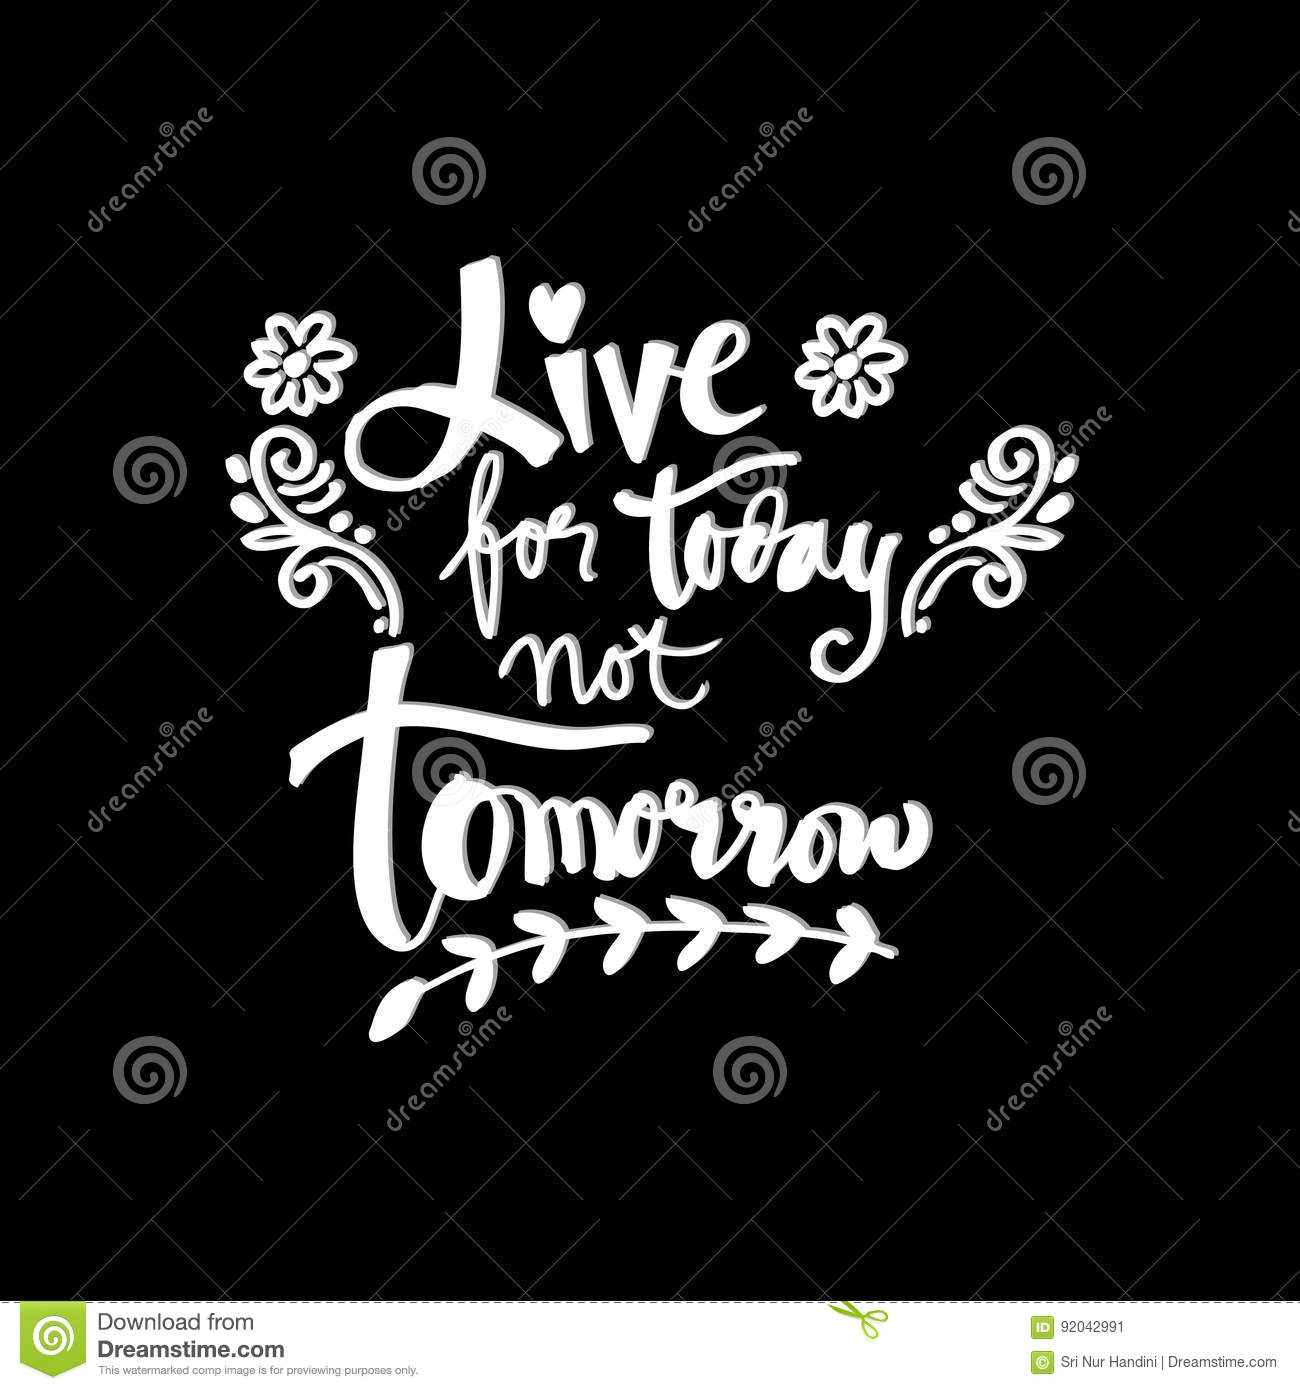 Live For Today Quotes Live For Today Not Tomorrowstock Illustration  Image 92042991